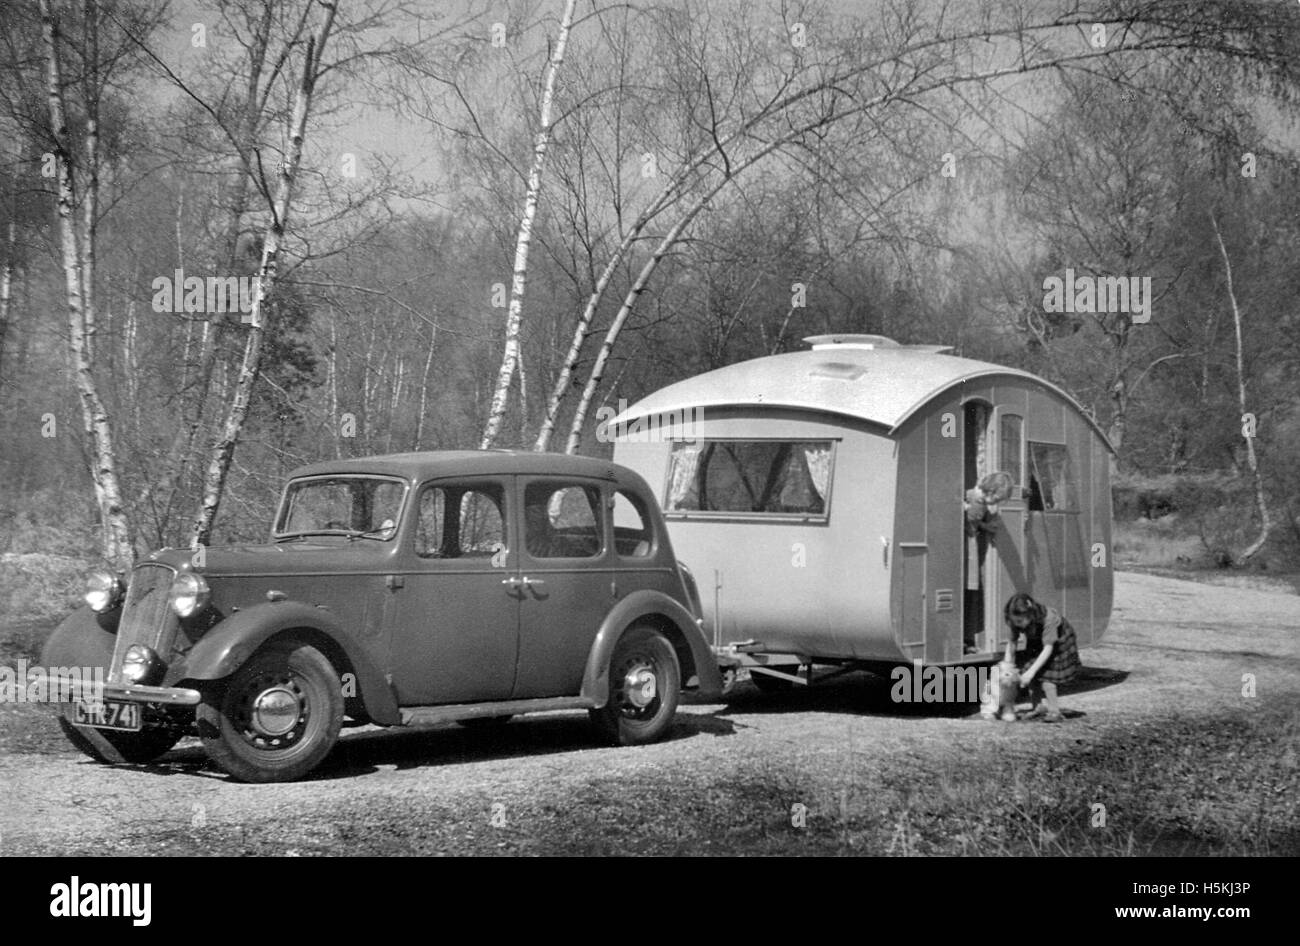 Austin Light 12/4 Ascot saloon with caravan - Stock Image